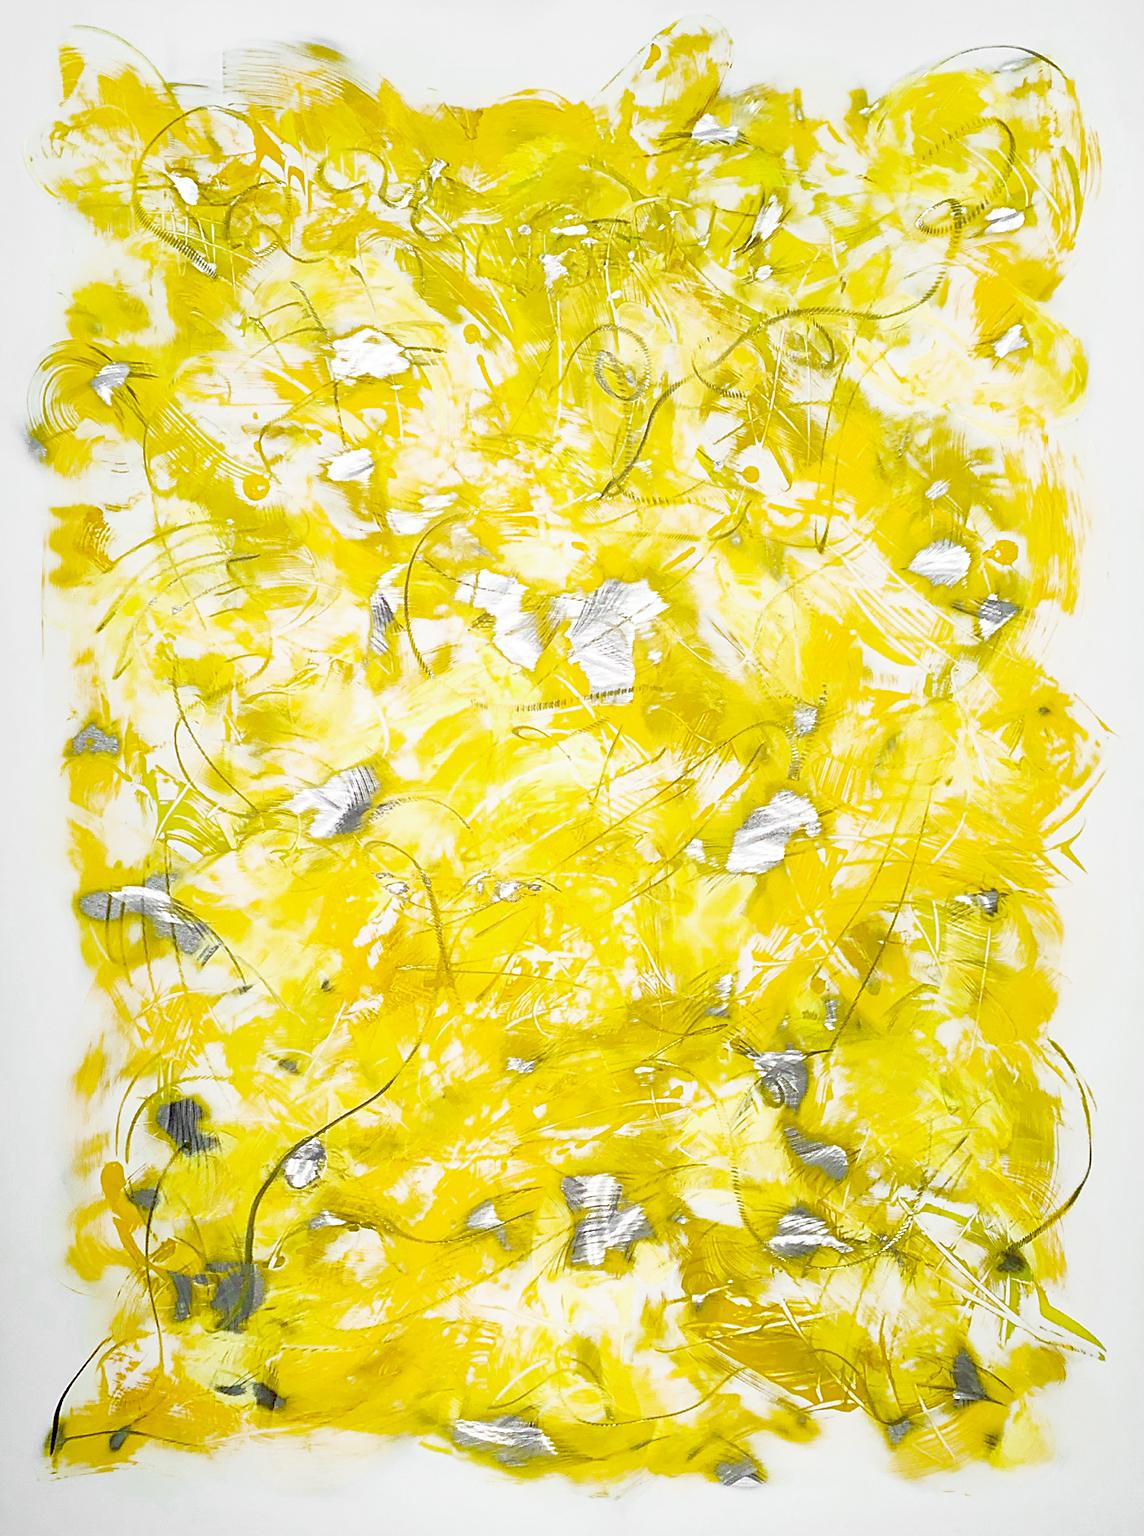 """""""Untitled Yellow"""", Abstract, Acrylic Painting on Aluminum Panel by Kevin Barrett"""